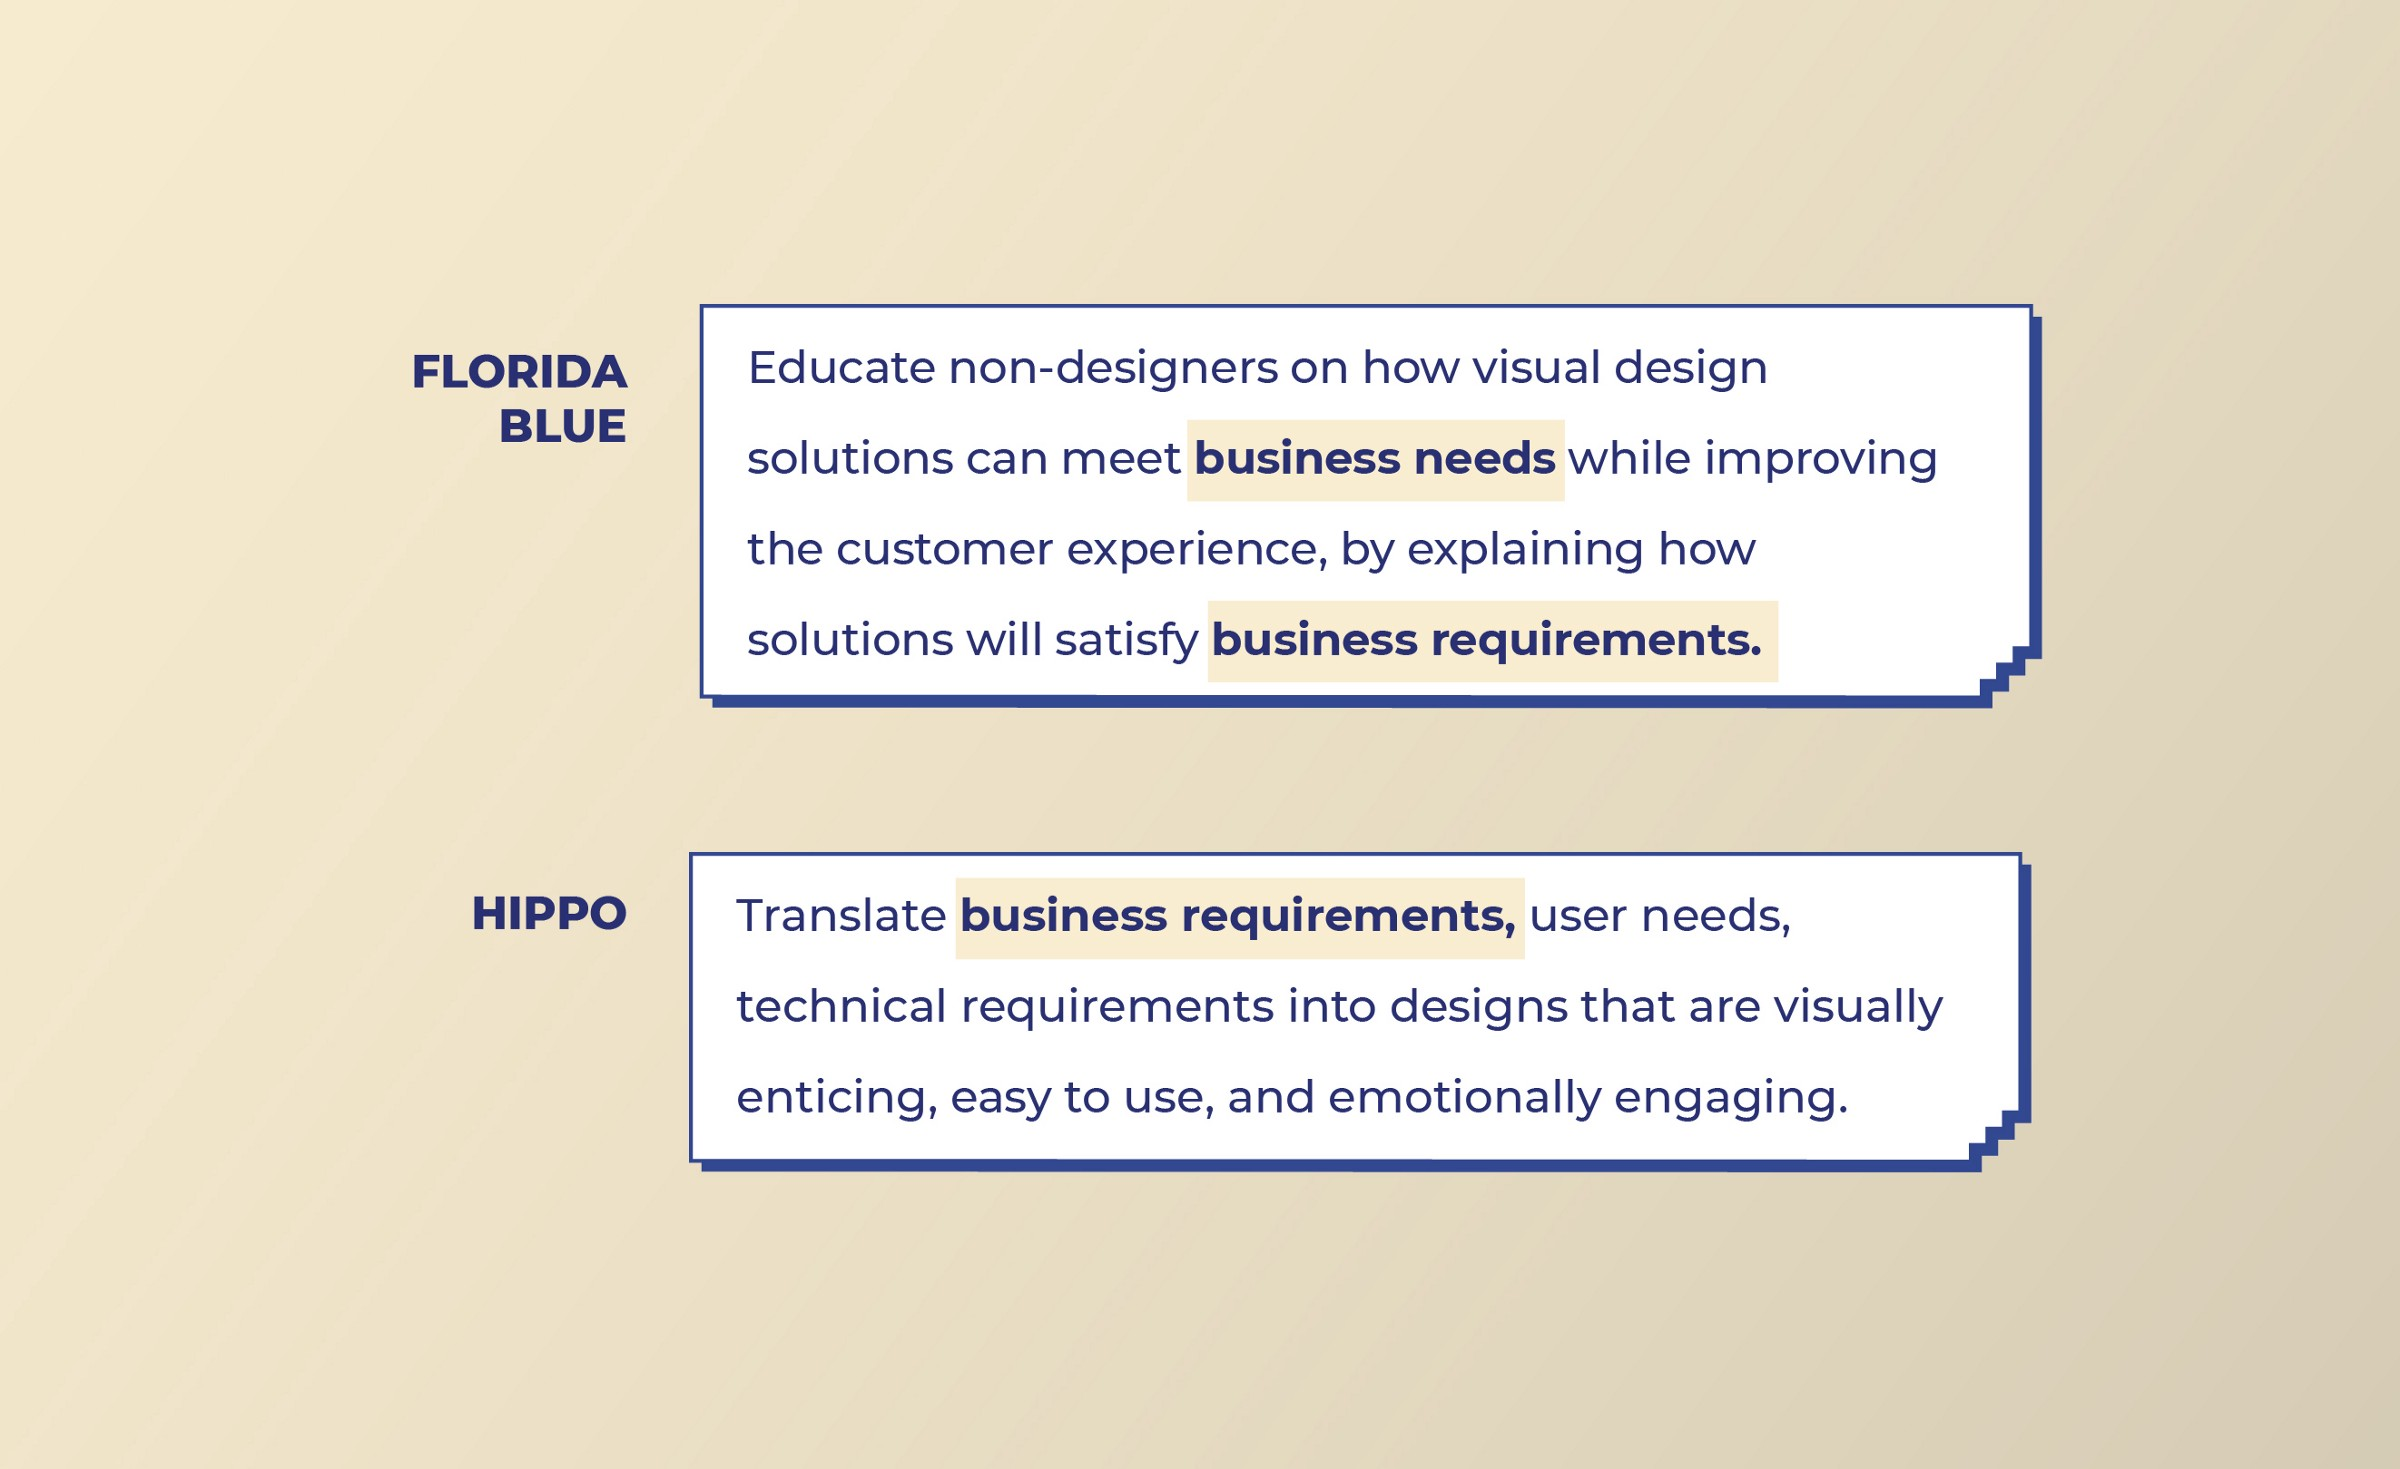 Florida Blue and Hippo look for Business skills from Visual designers